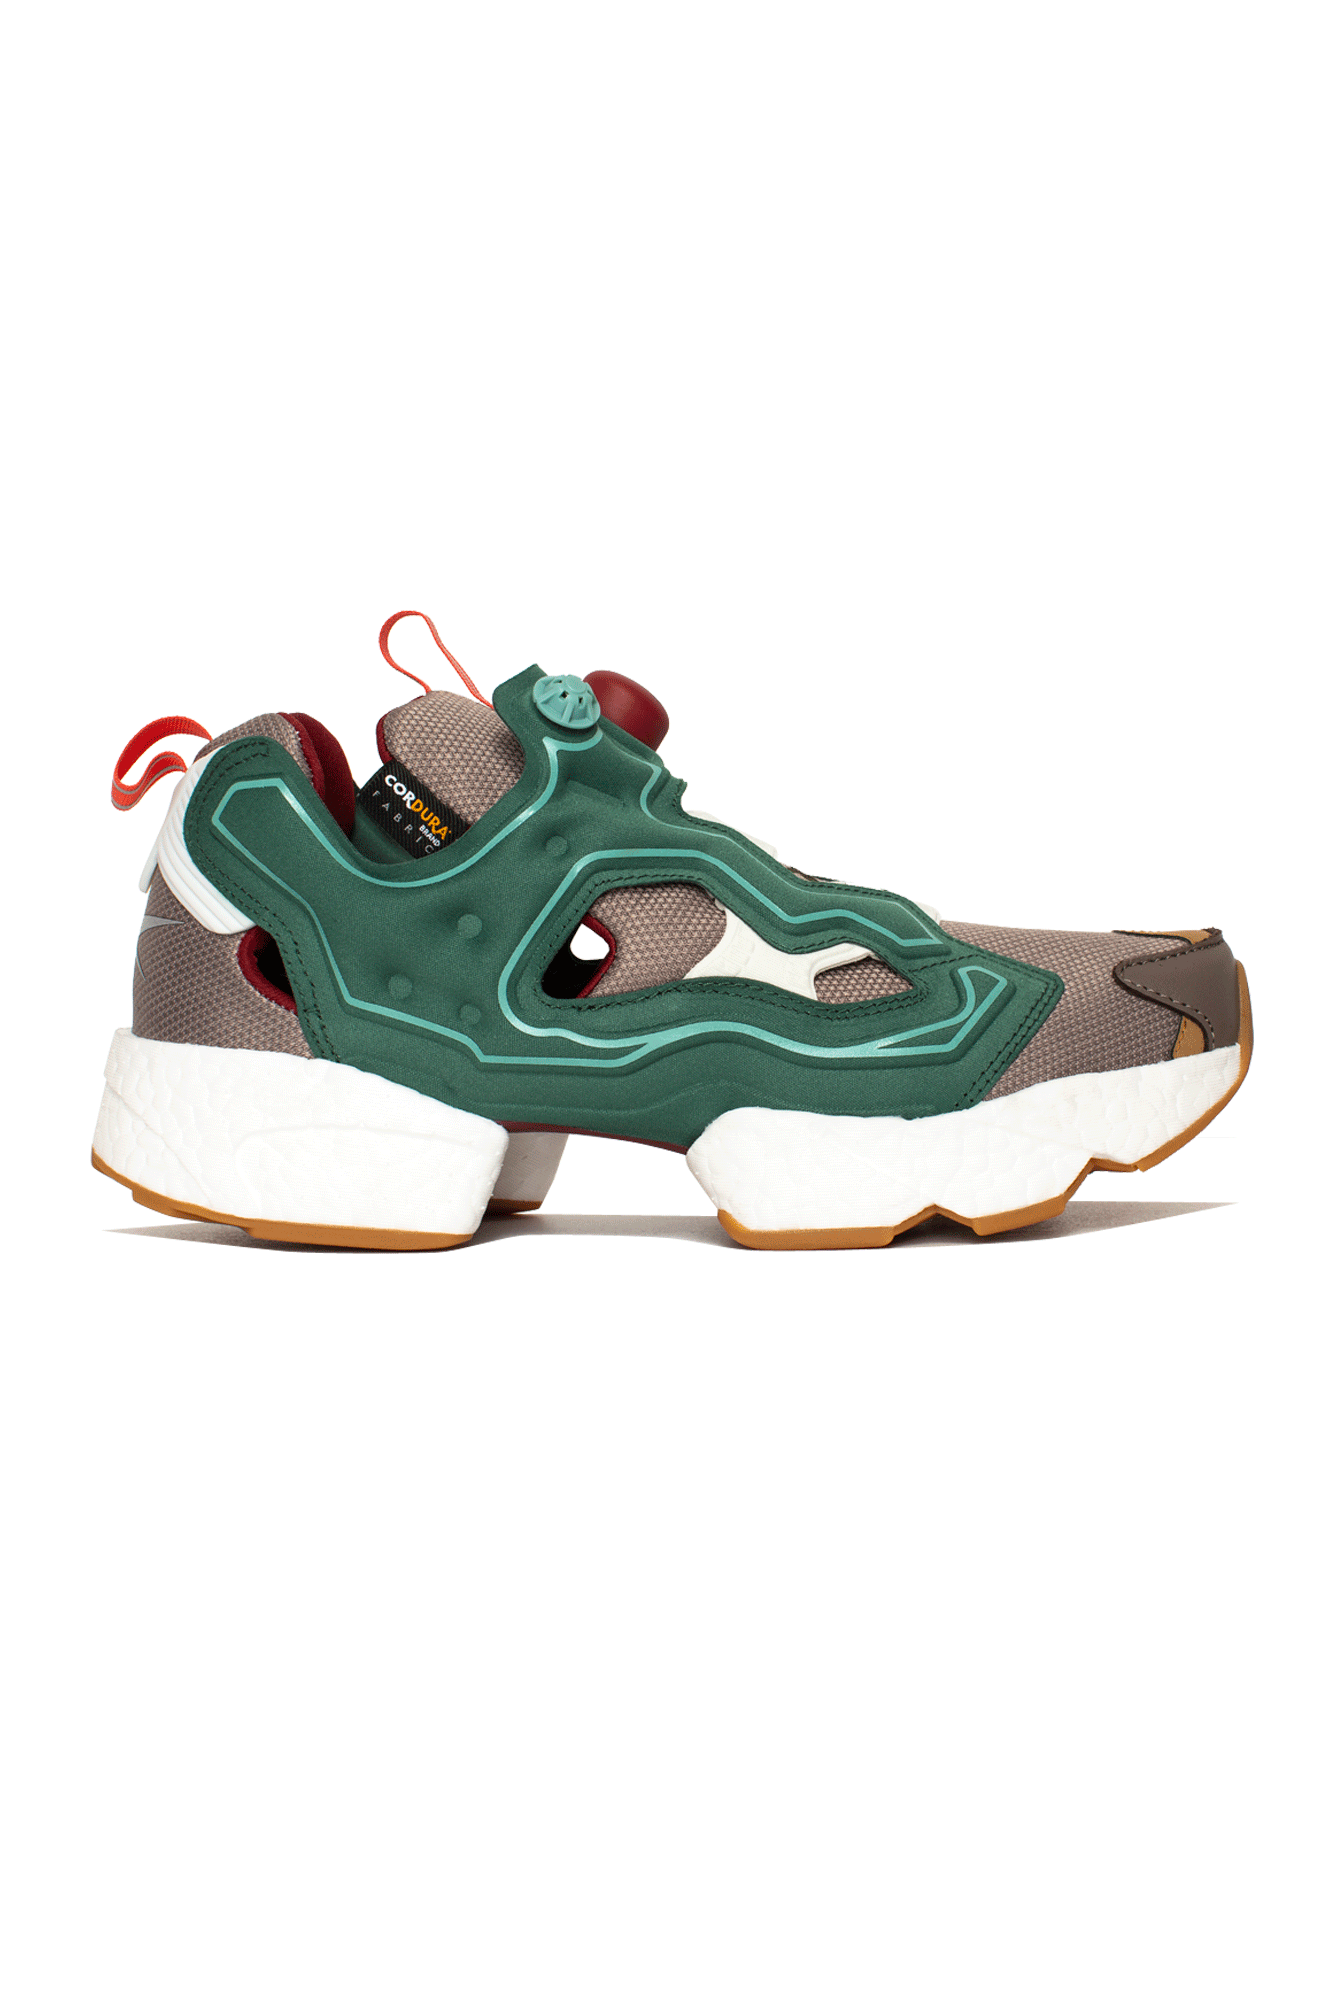 Instapump Fury Boost x Billionaires Boys Club